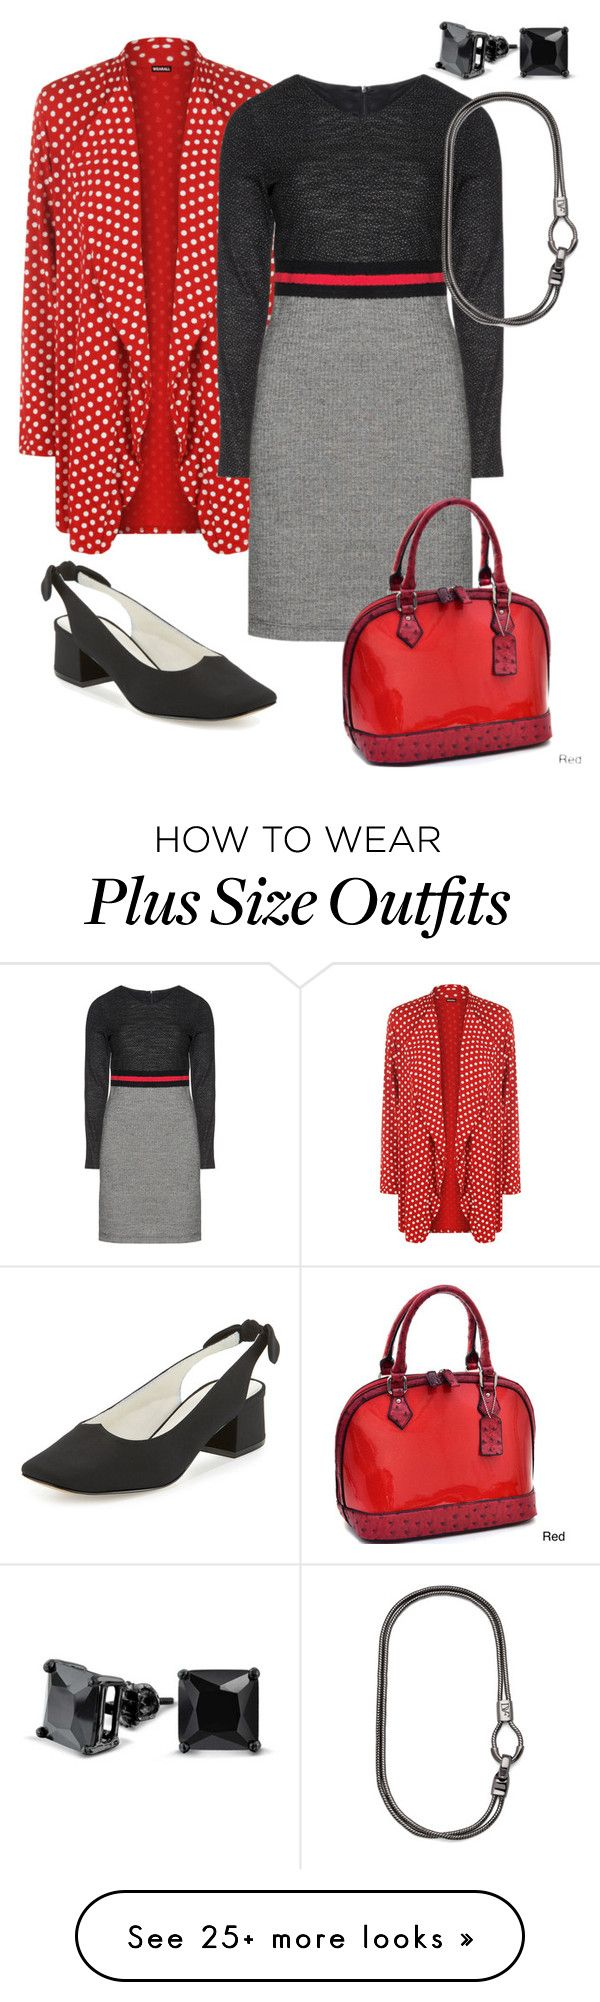 """""""Office Update, Plus Size"""" by dundiddit on Polyvore featuring Bling Jewelry, WearAll, Evelin Brandt, Bettye Muller, Dasein, Diane Von Furstenberg and frugal"""